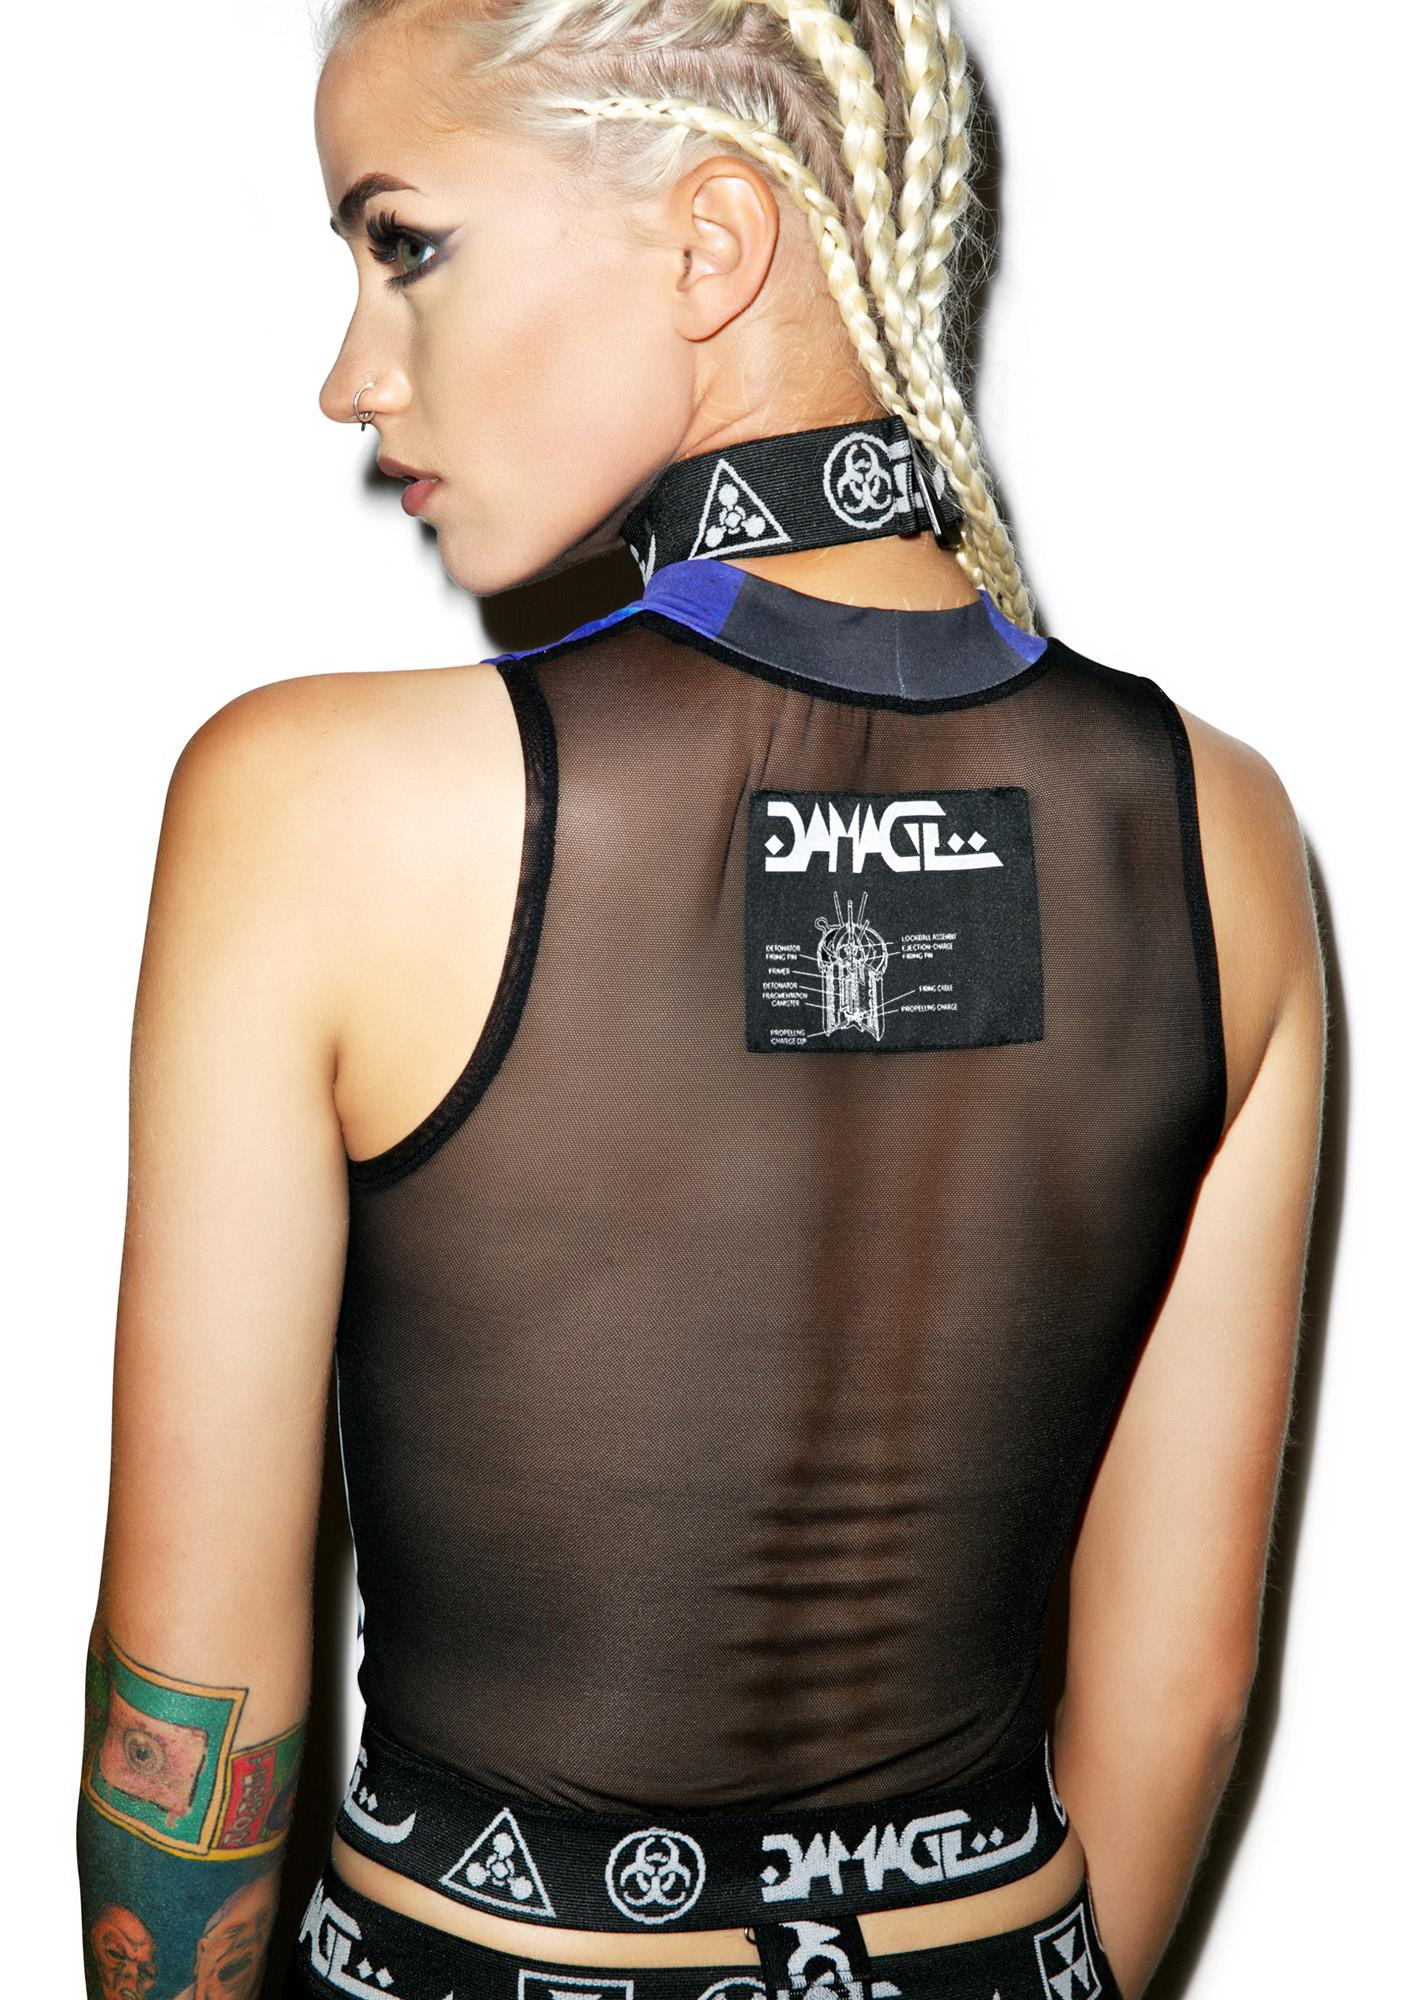 DAMAGE Nuke Kid On The Block Crop Top